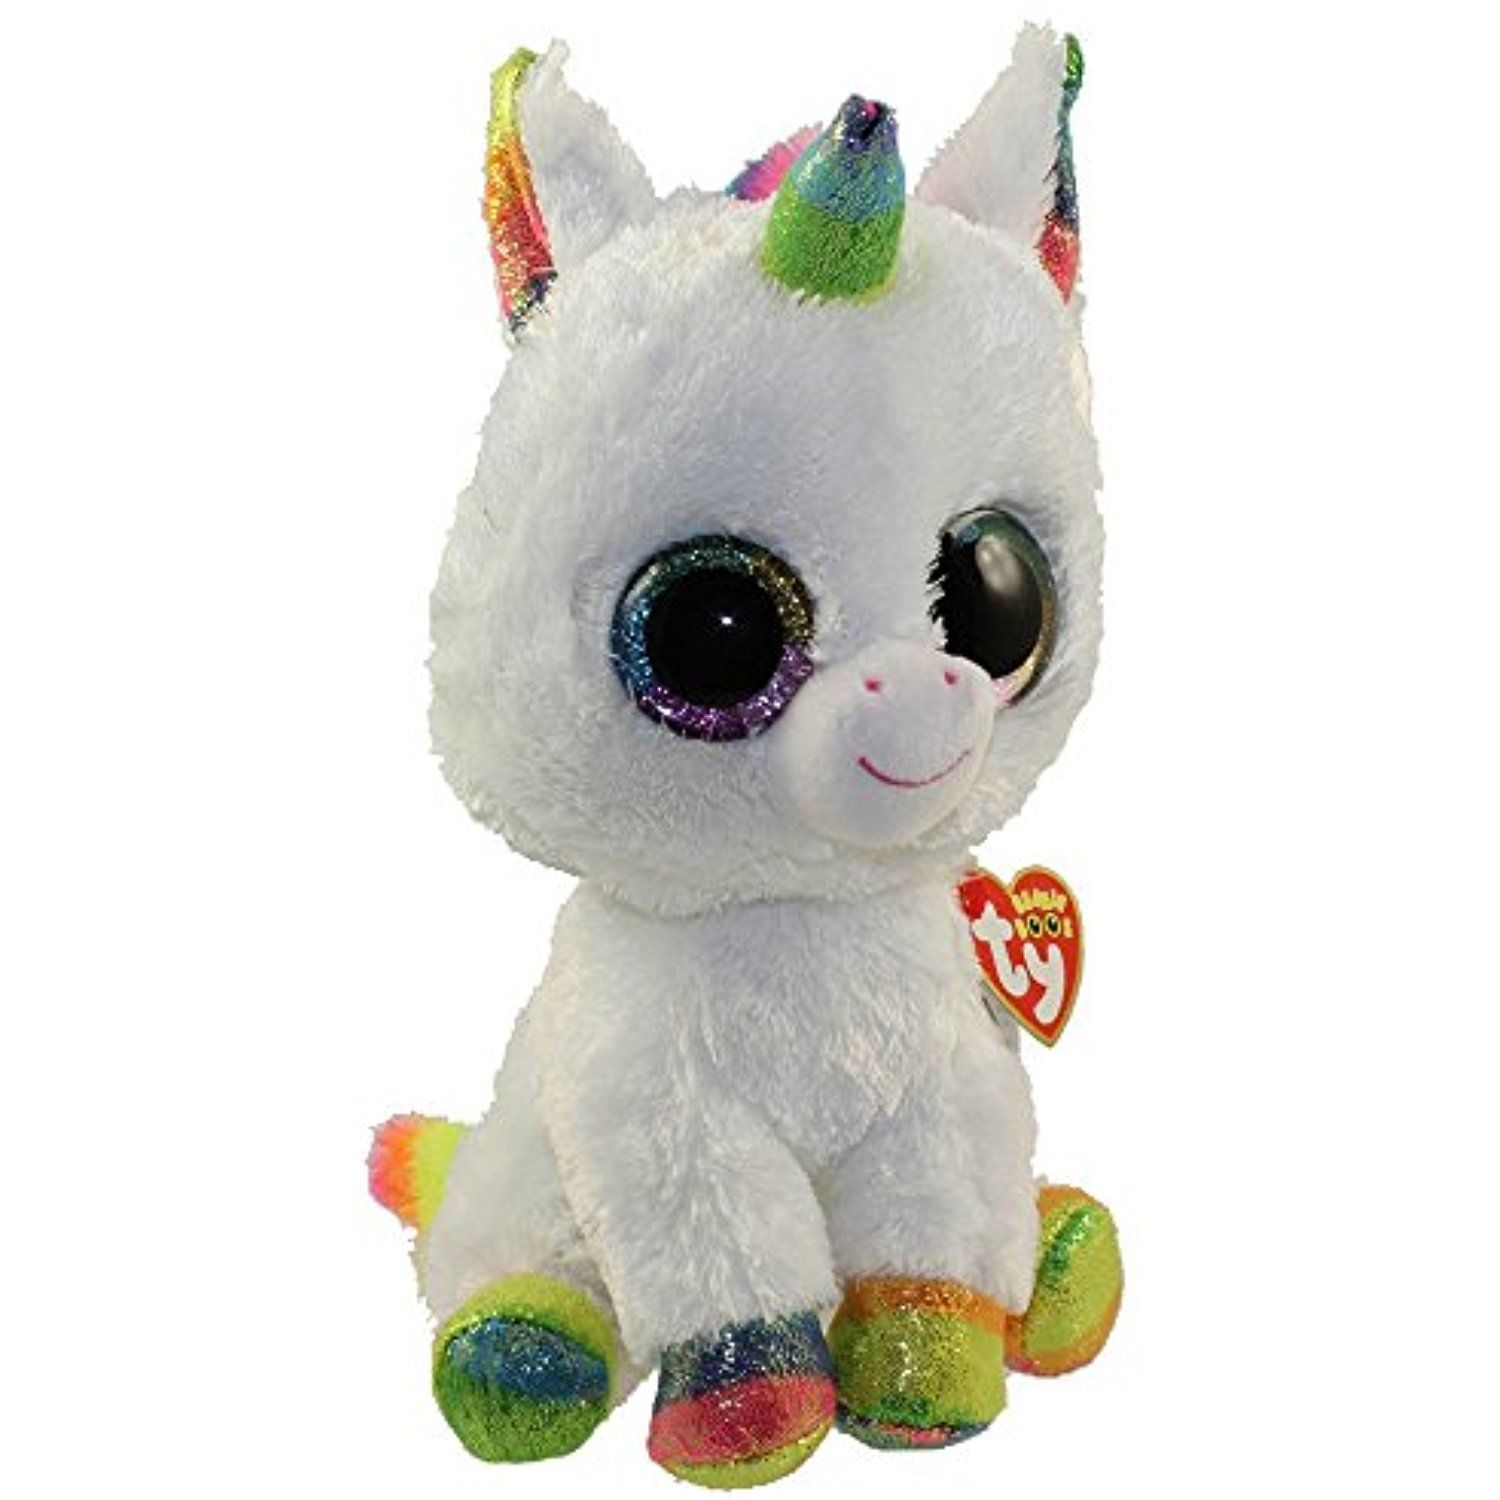 Ty Beanie Boo Plush 6 Pixy The Unicorn Free Gift With Purchase You Can Get Additional Deta With Images Unicorn Stuffed Animal Plush Unicorn Stuffed Animal Boo Plush